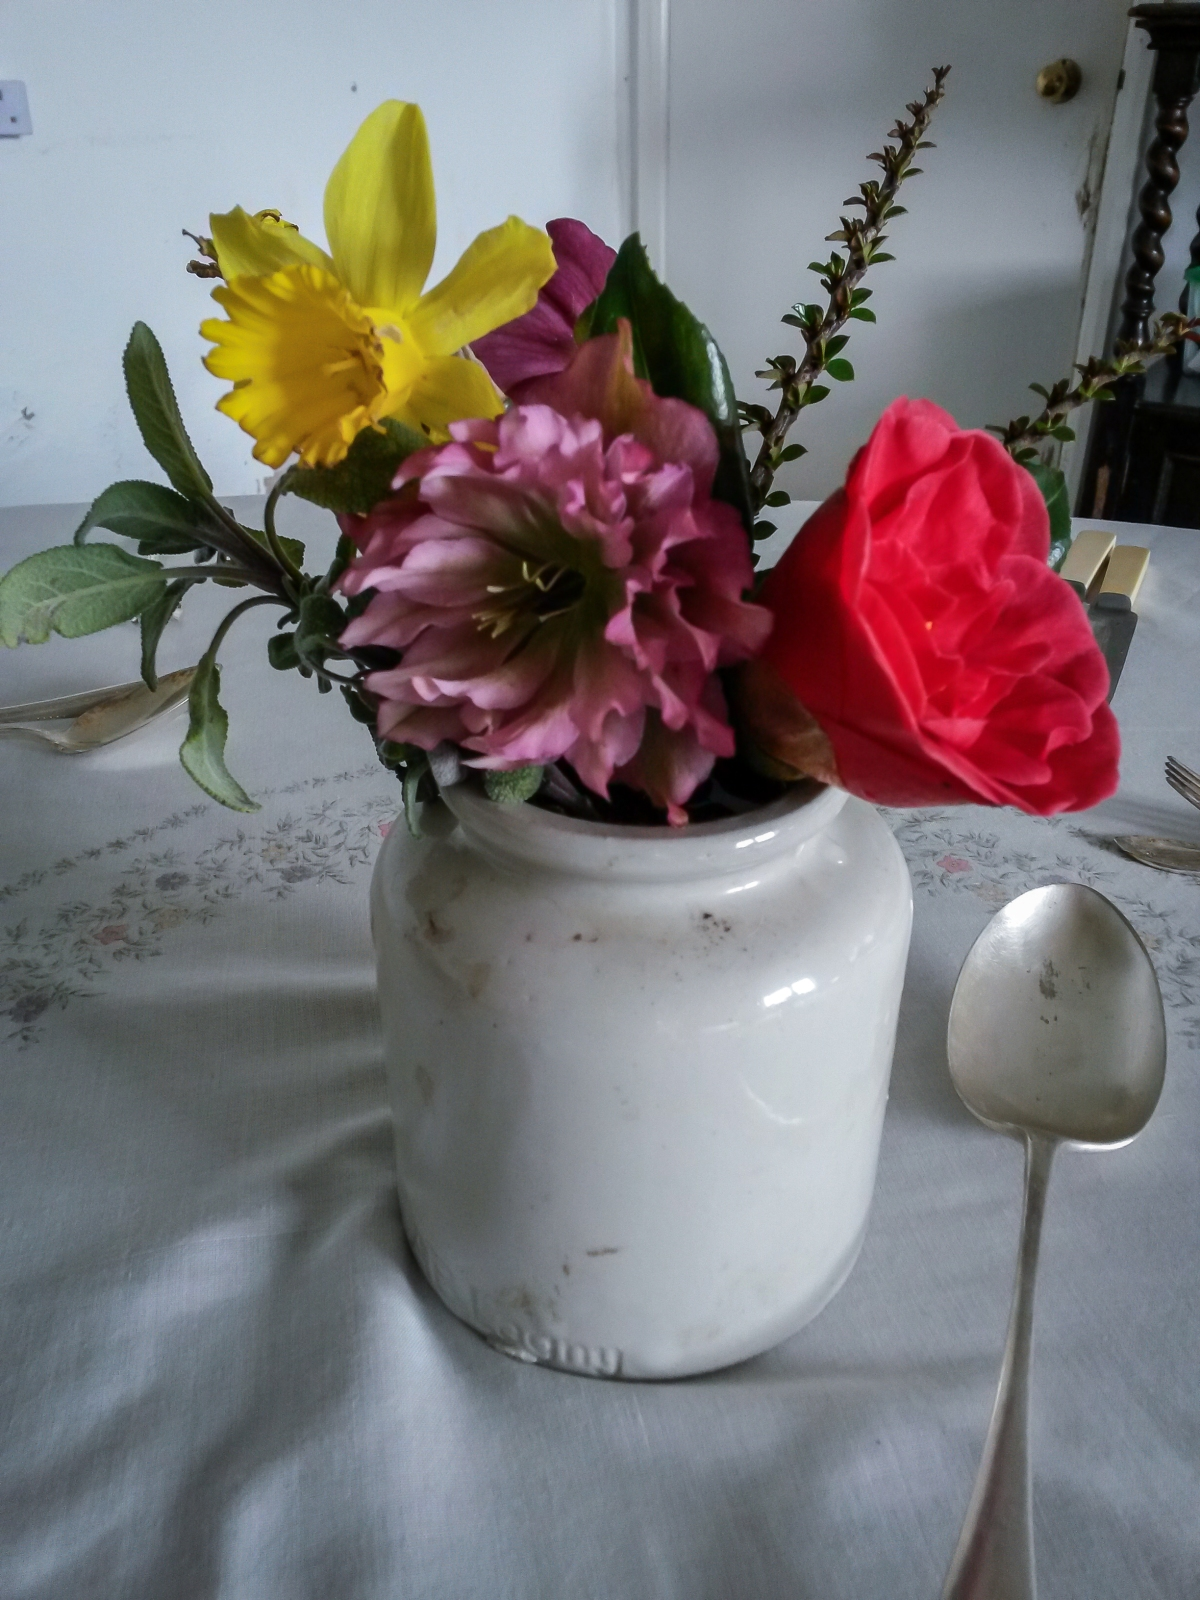 In a vase on Monday (and on a cake onSunday)